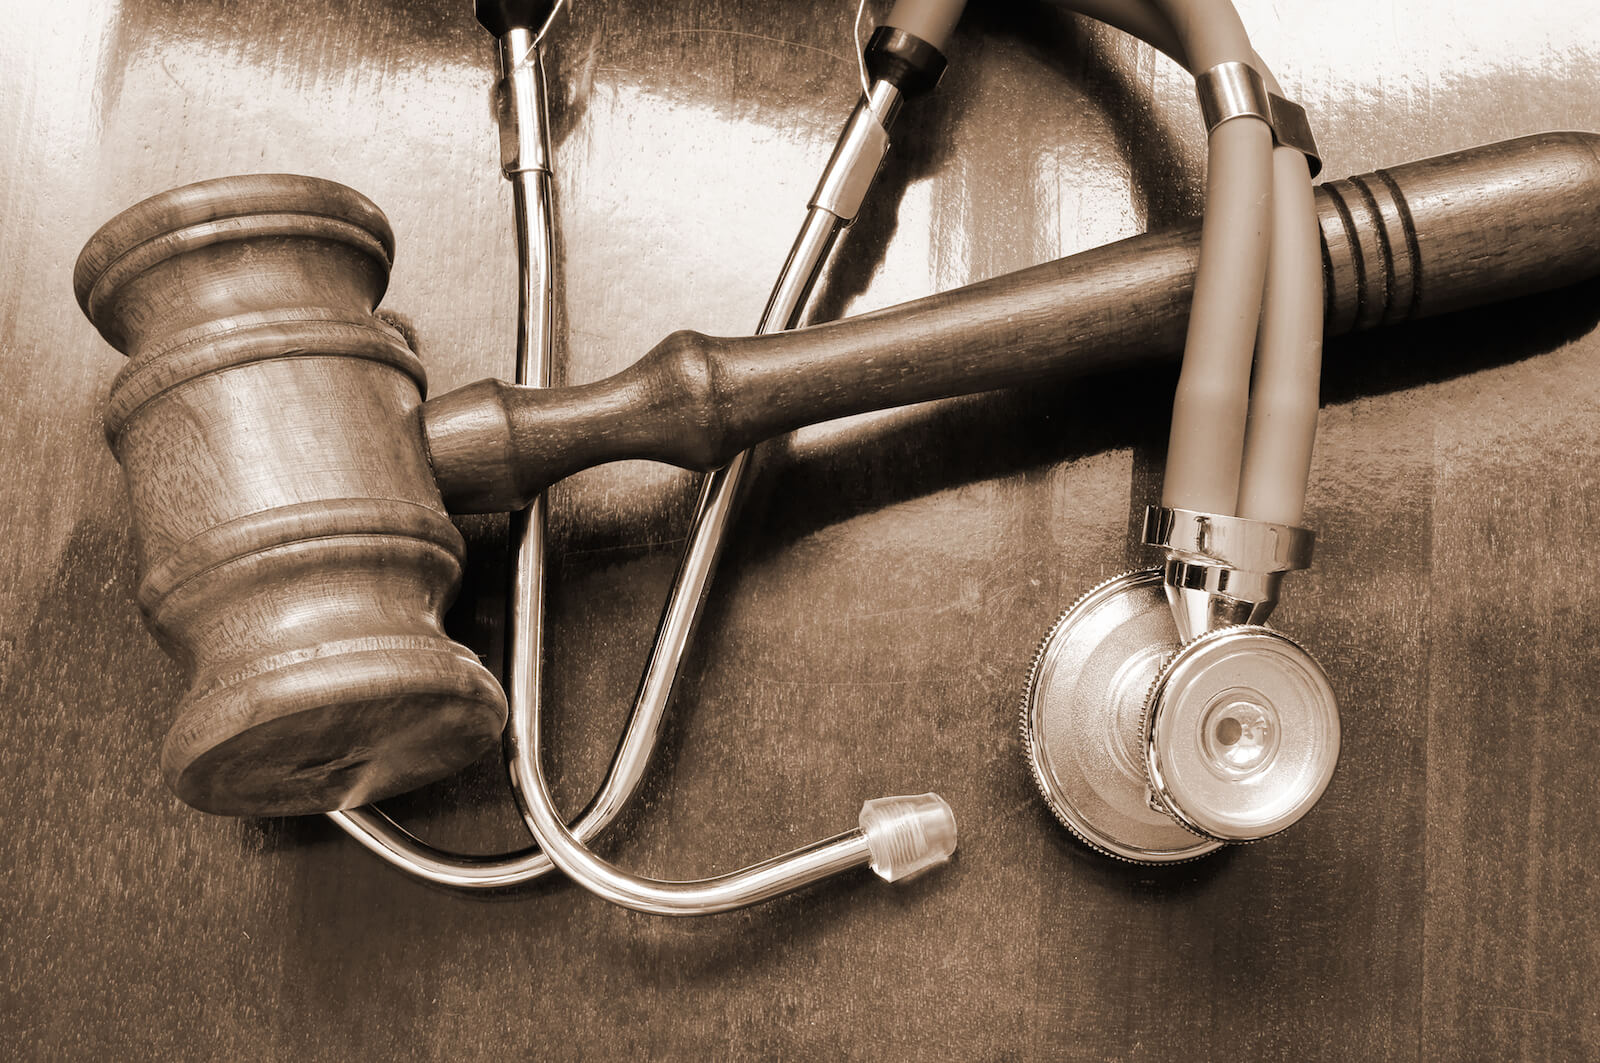 Tips to Avoid Malpractice